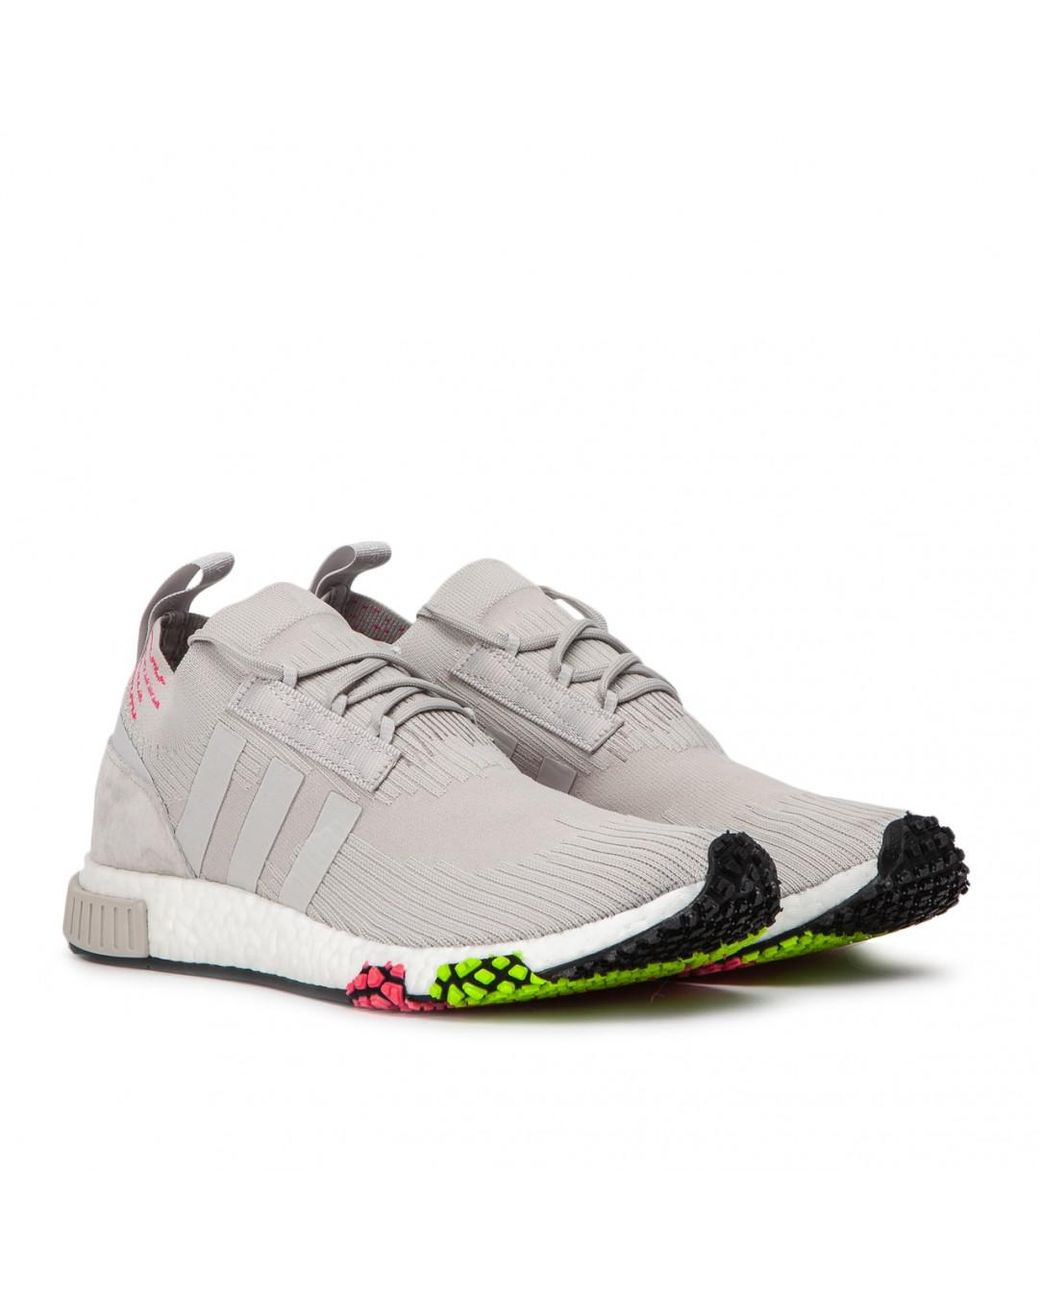 f372bdea9c355 adidas Nmd Racer Primeknit Trainer in Gray for Men - Save 37% - Lyst